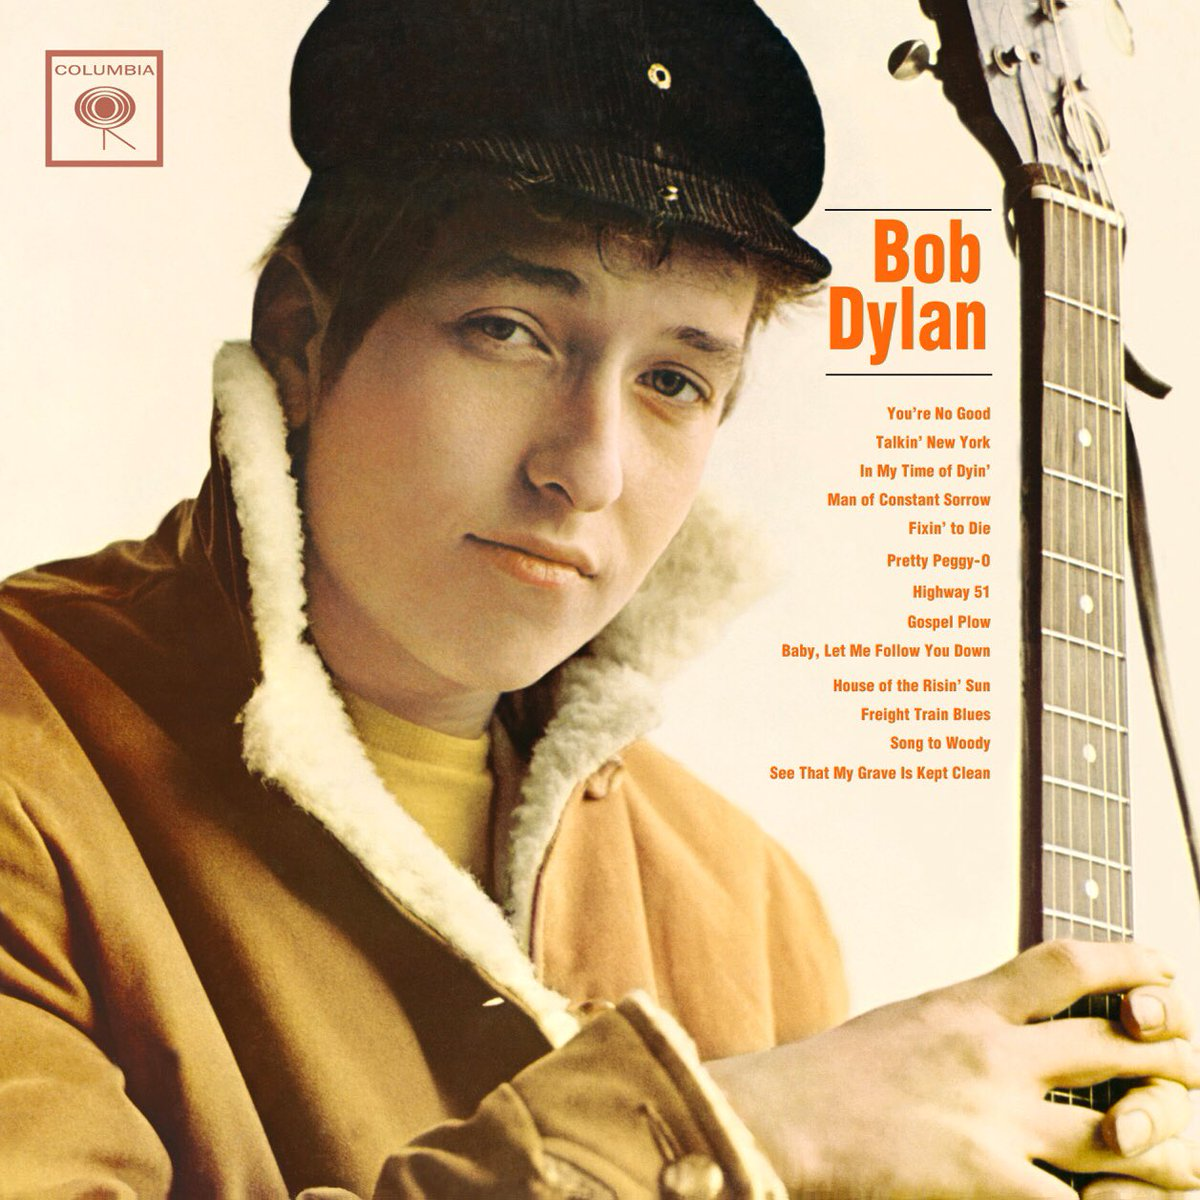 @bobdylan released his debut studio album 57 years ago today, March 19, 1962 <br>http://pic.twitter.com/HoAkbwIM13